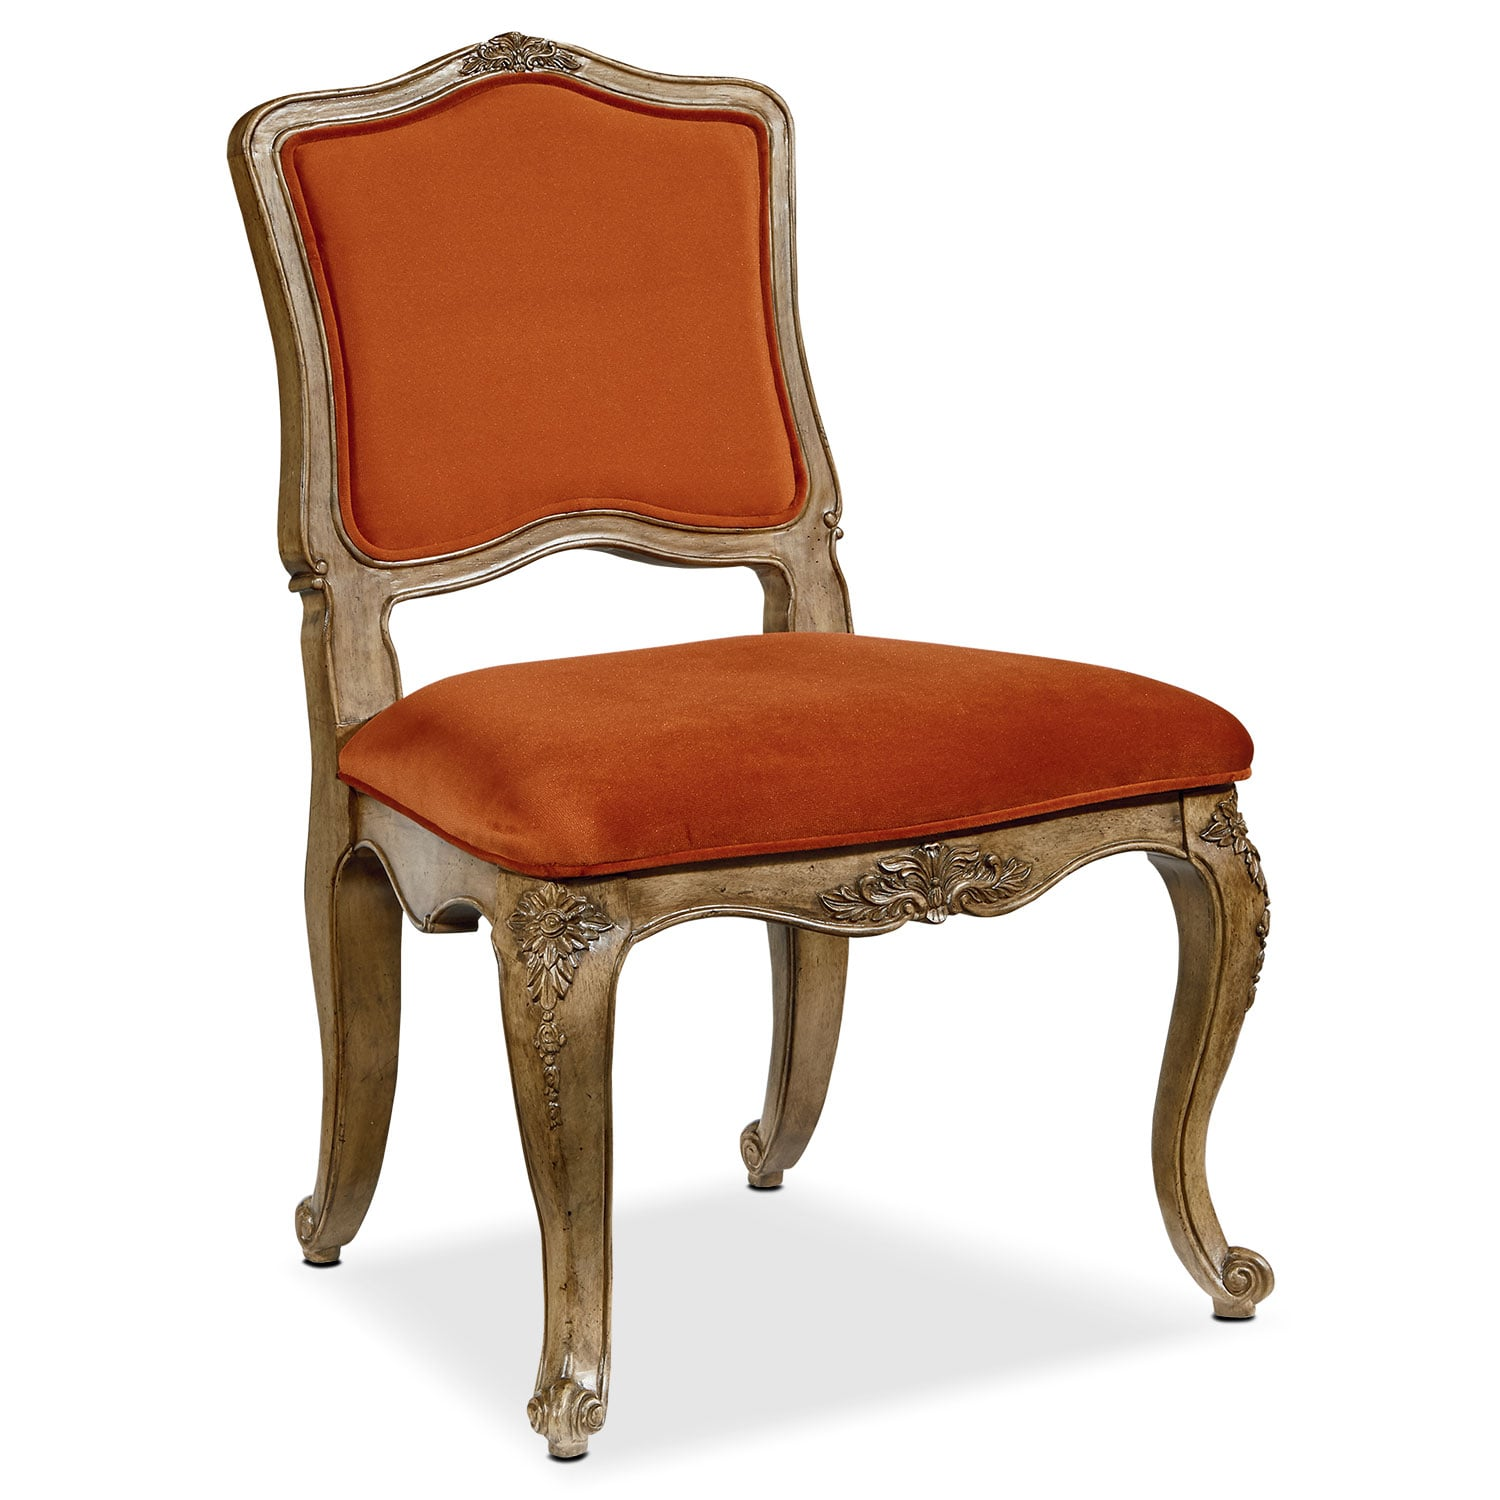 Dining Room Furniture - Flora Accent Chair - Saffron